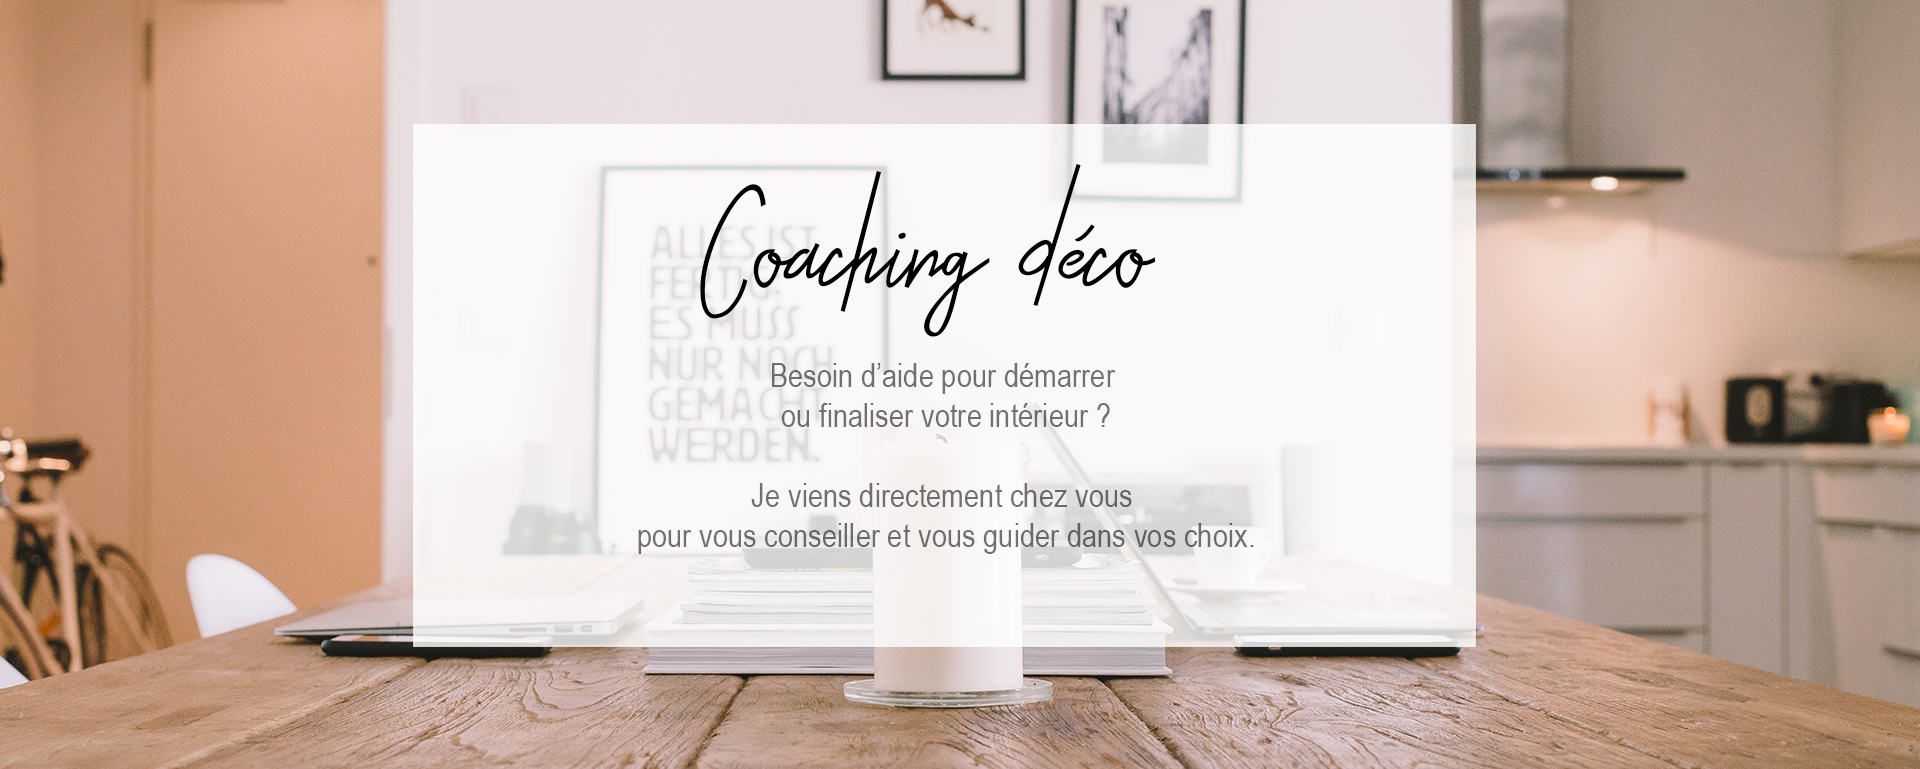 Coaching Deco Tarif Prestations Marelle Déco Design